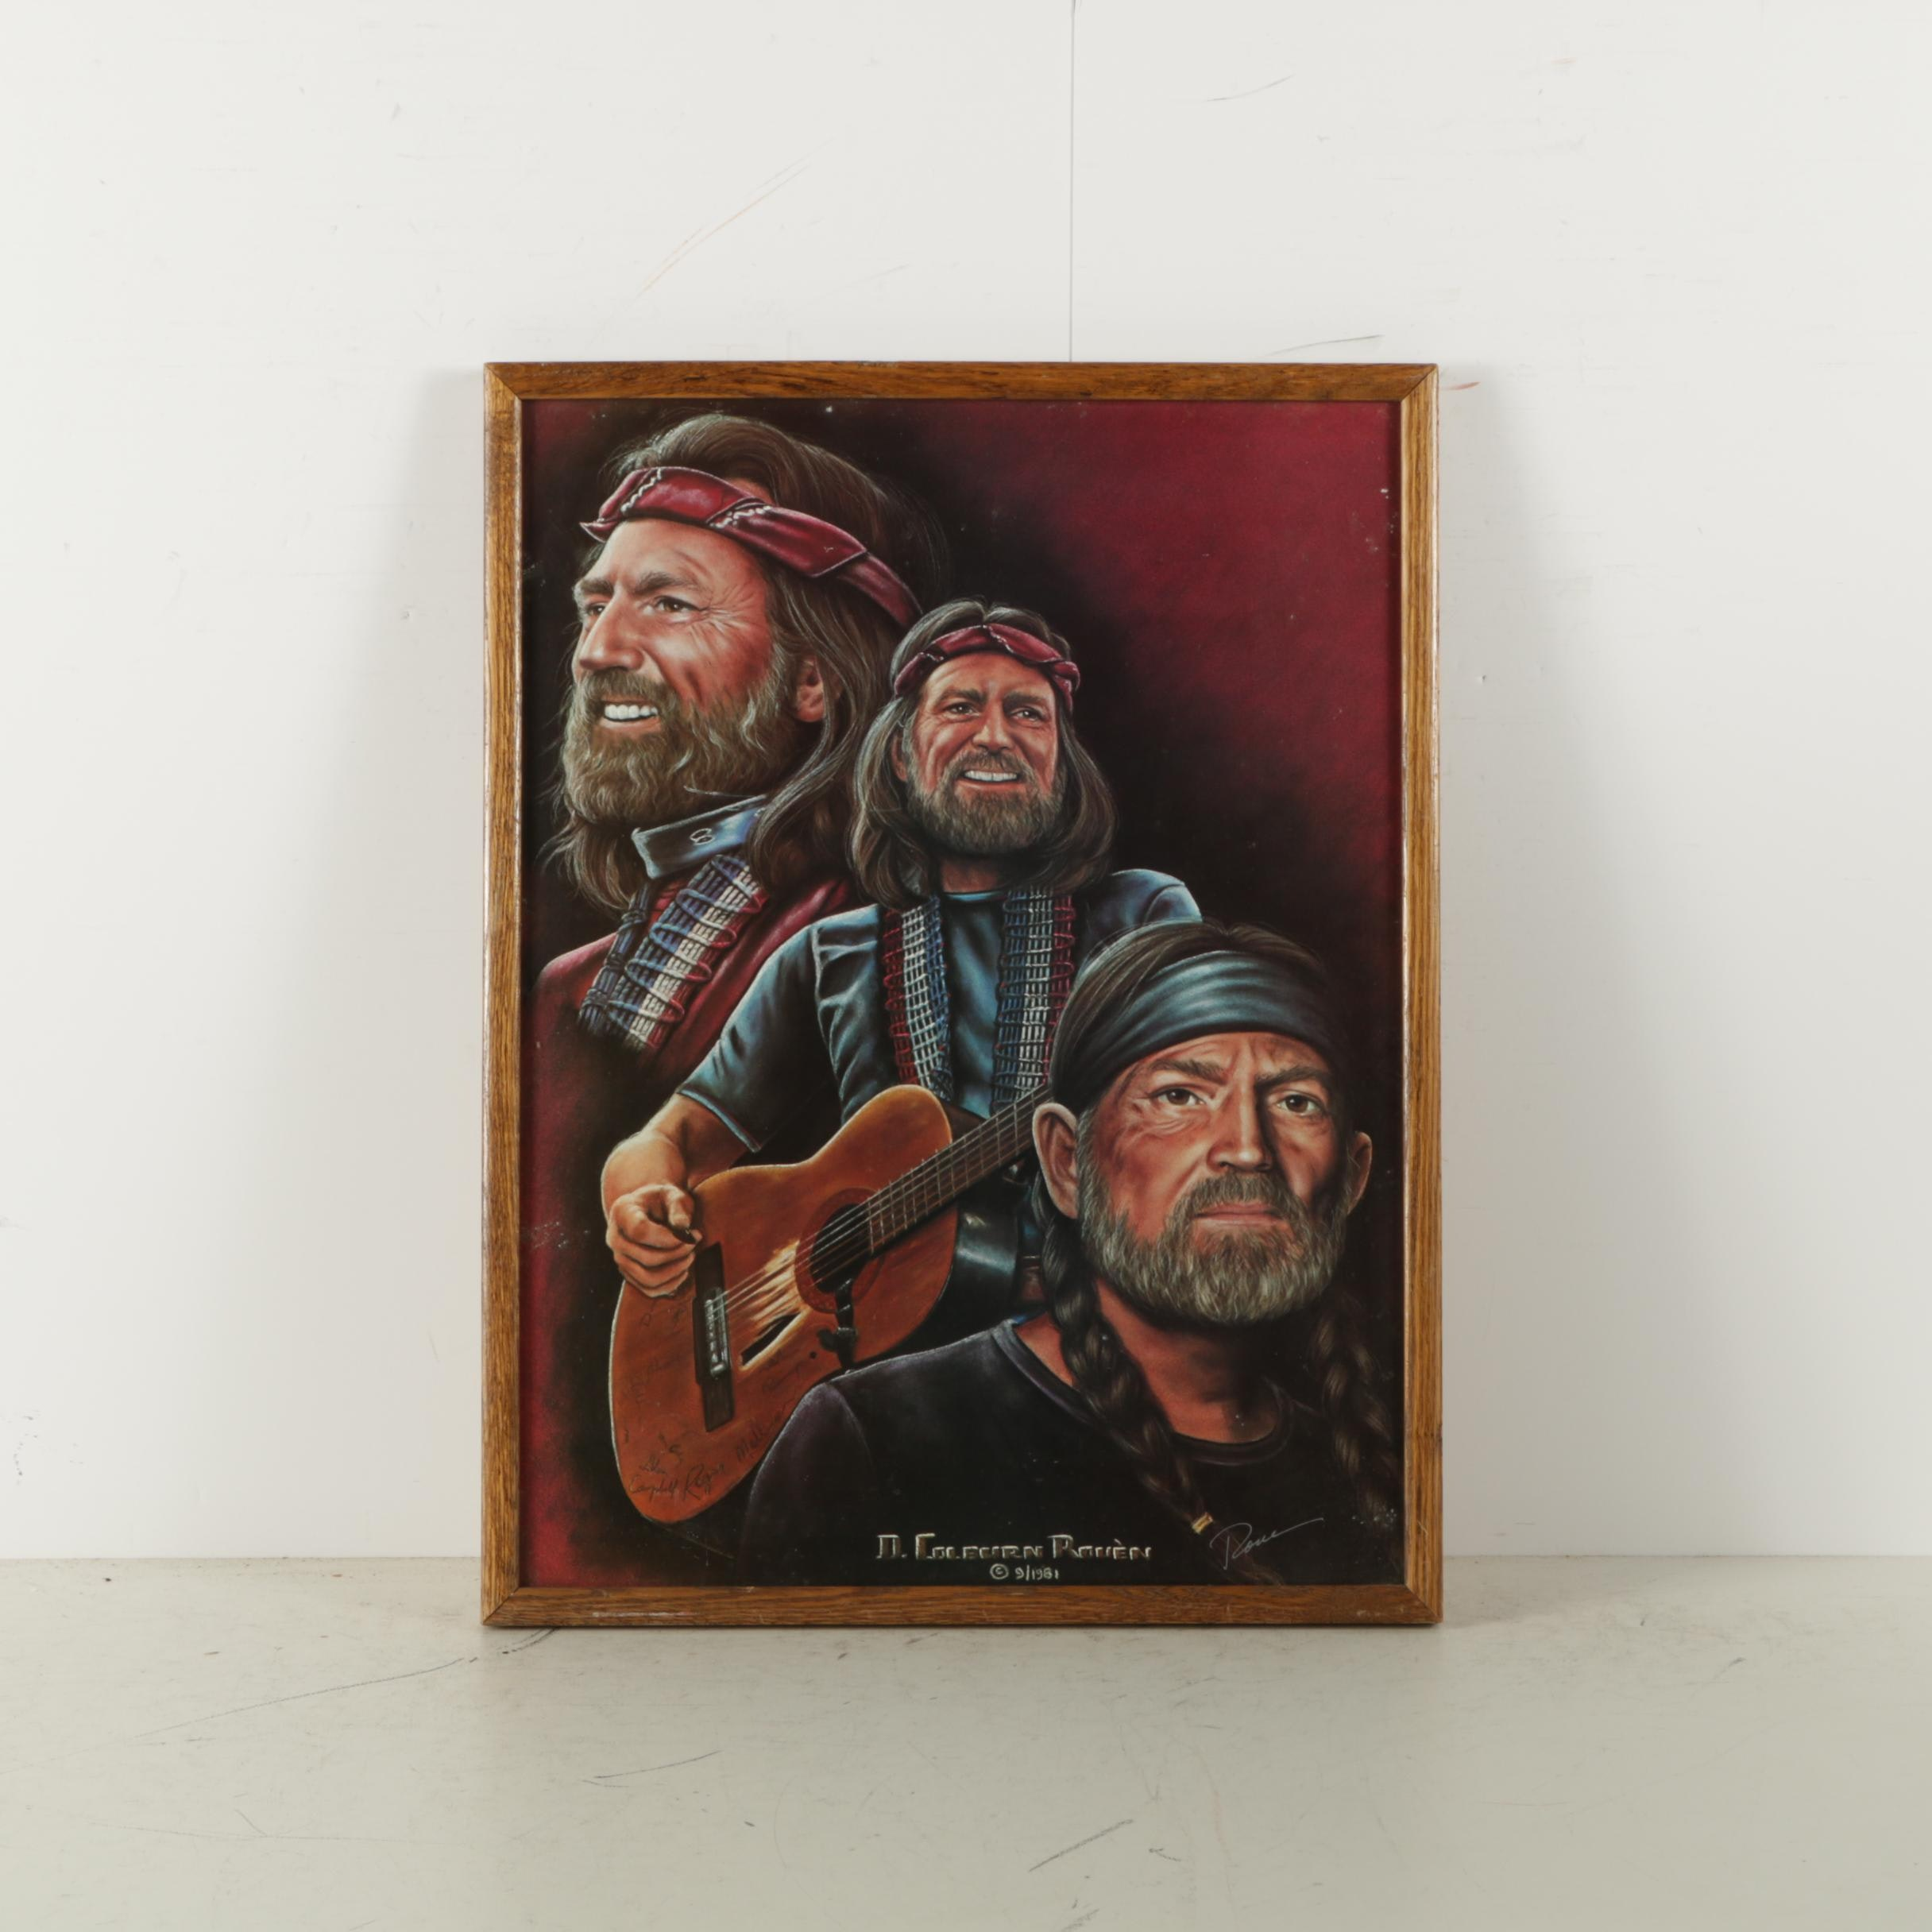 D. Colburn Rouen Poster on Paper of Willie Nelson